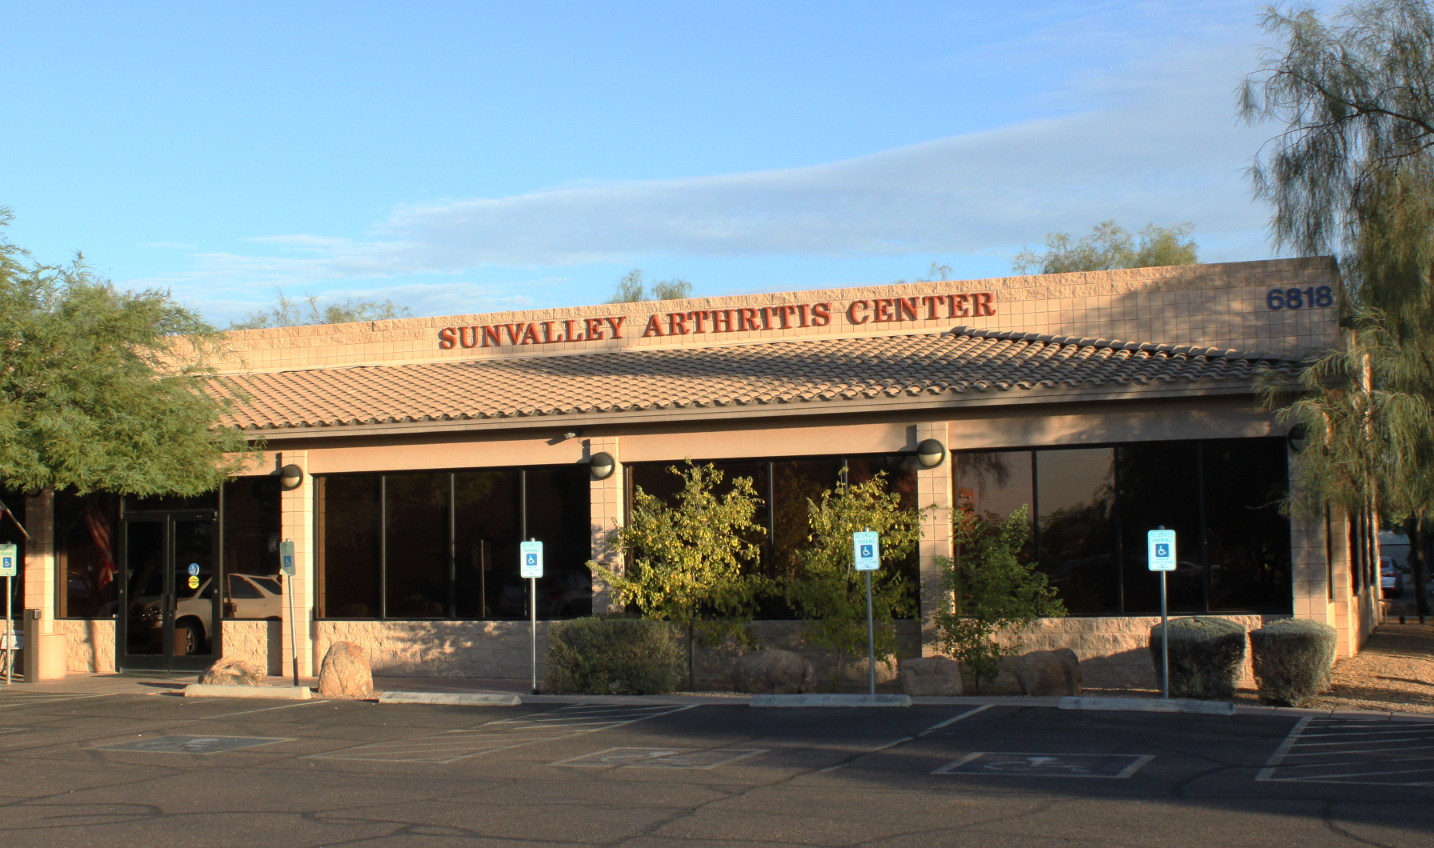 Sun Valley Arthritis Center